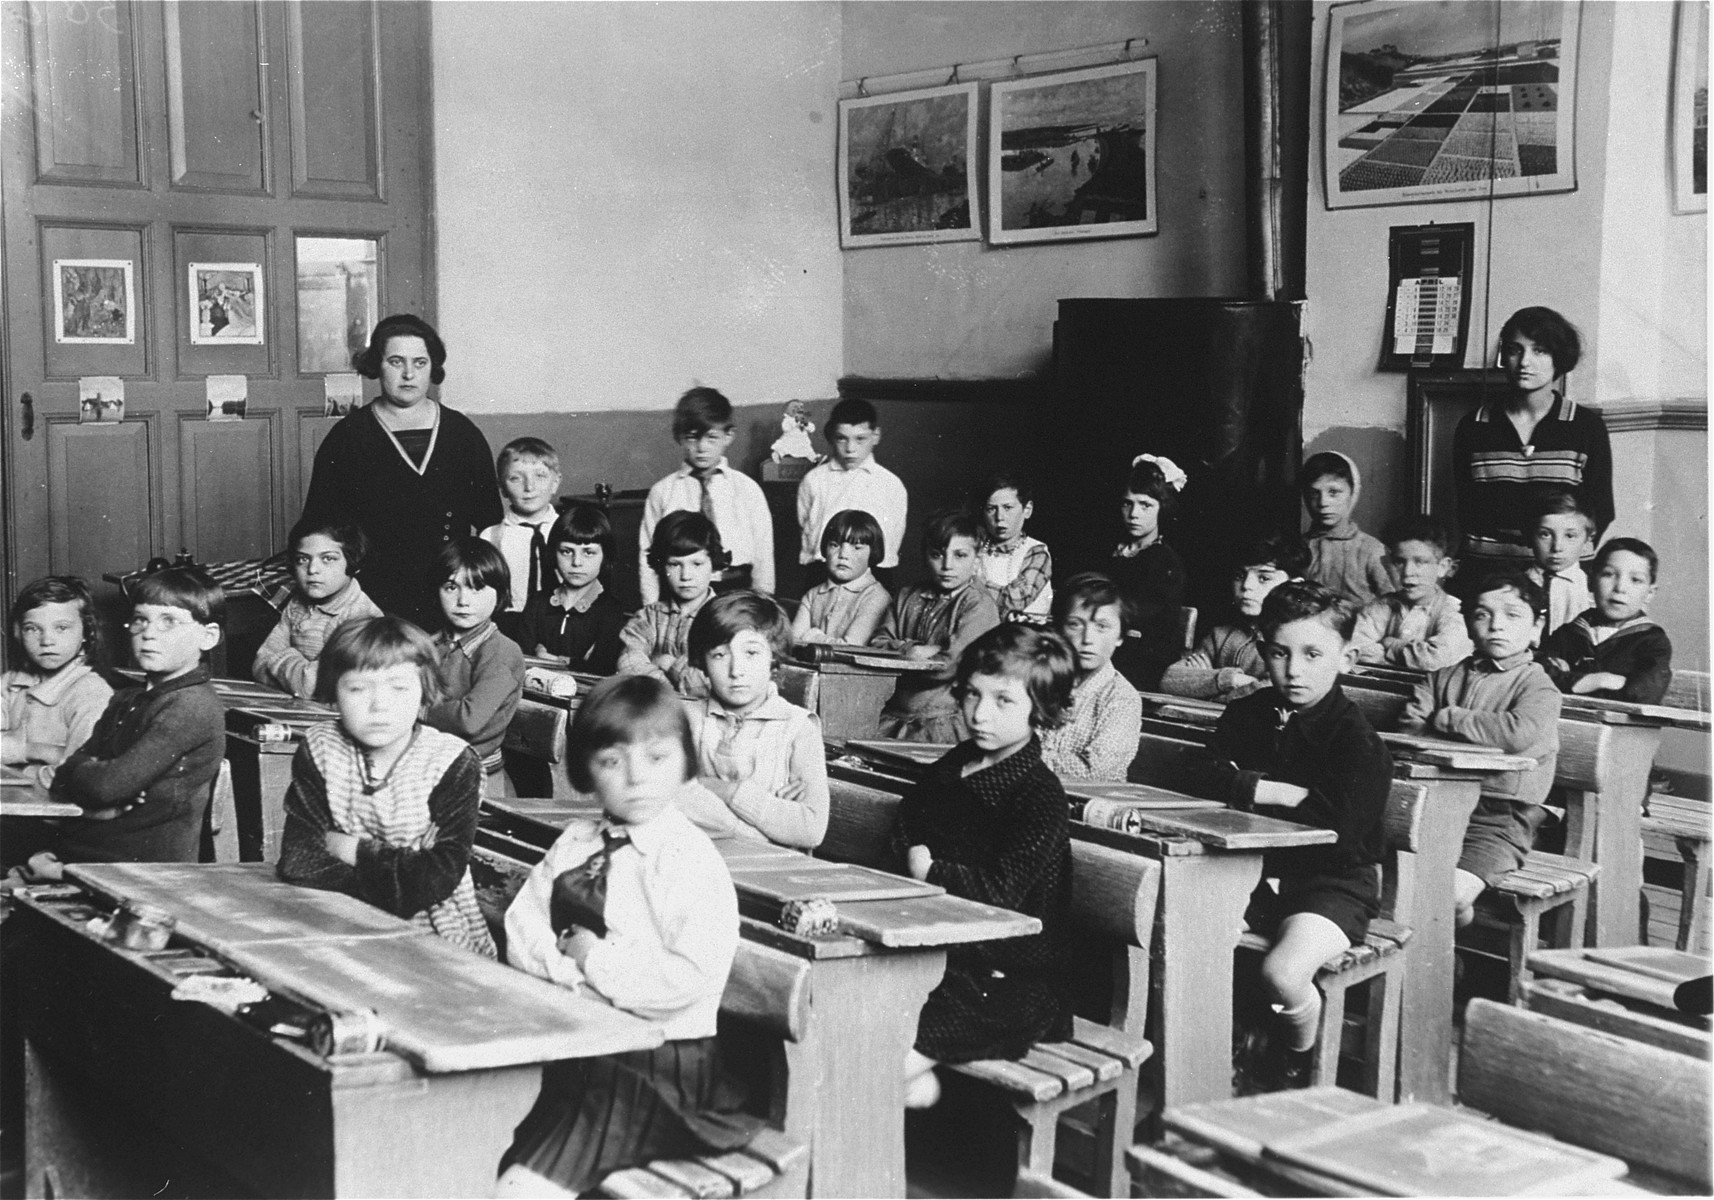 An elementary school class at a Jewish public school in Amsterdam.    The teacher is Estelle d'Ancona-Vieyra, mother of donor Hetty d'Ancona de Leeuwe.